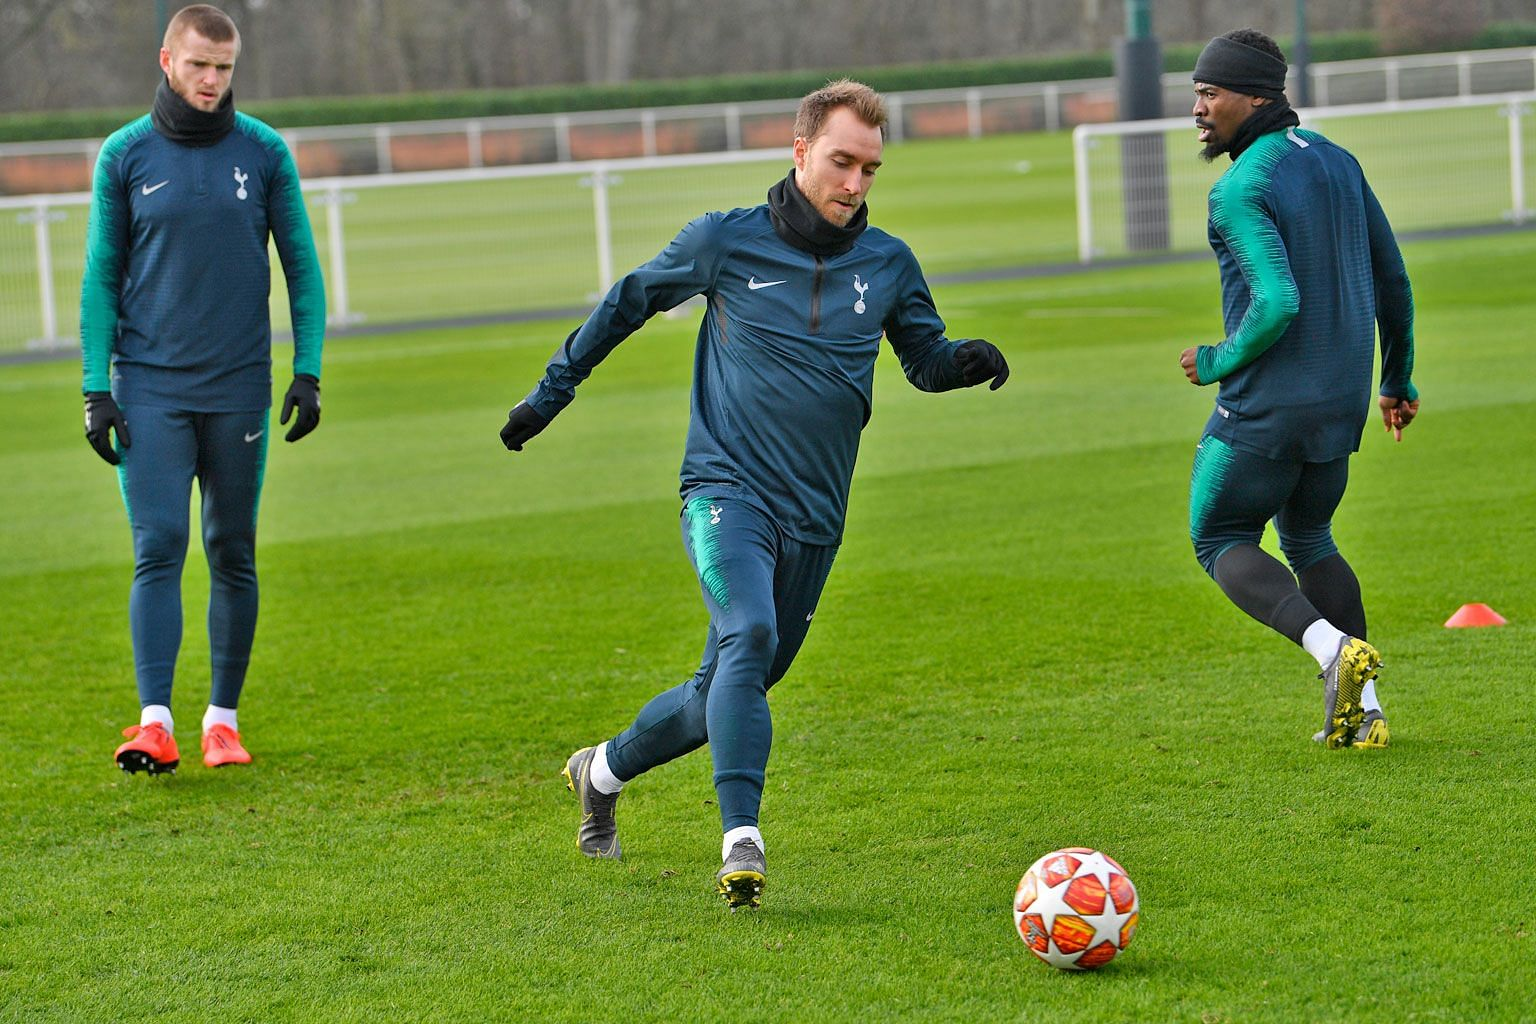 Spurs players (from far left) Eric Dier, Christian Eriksen and Serge Aurier training before facing Dortmund in their last-16 first leg in the Champions League today. The club last won a trophy - the League Cup - 11 years ago.